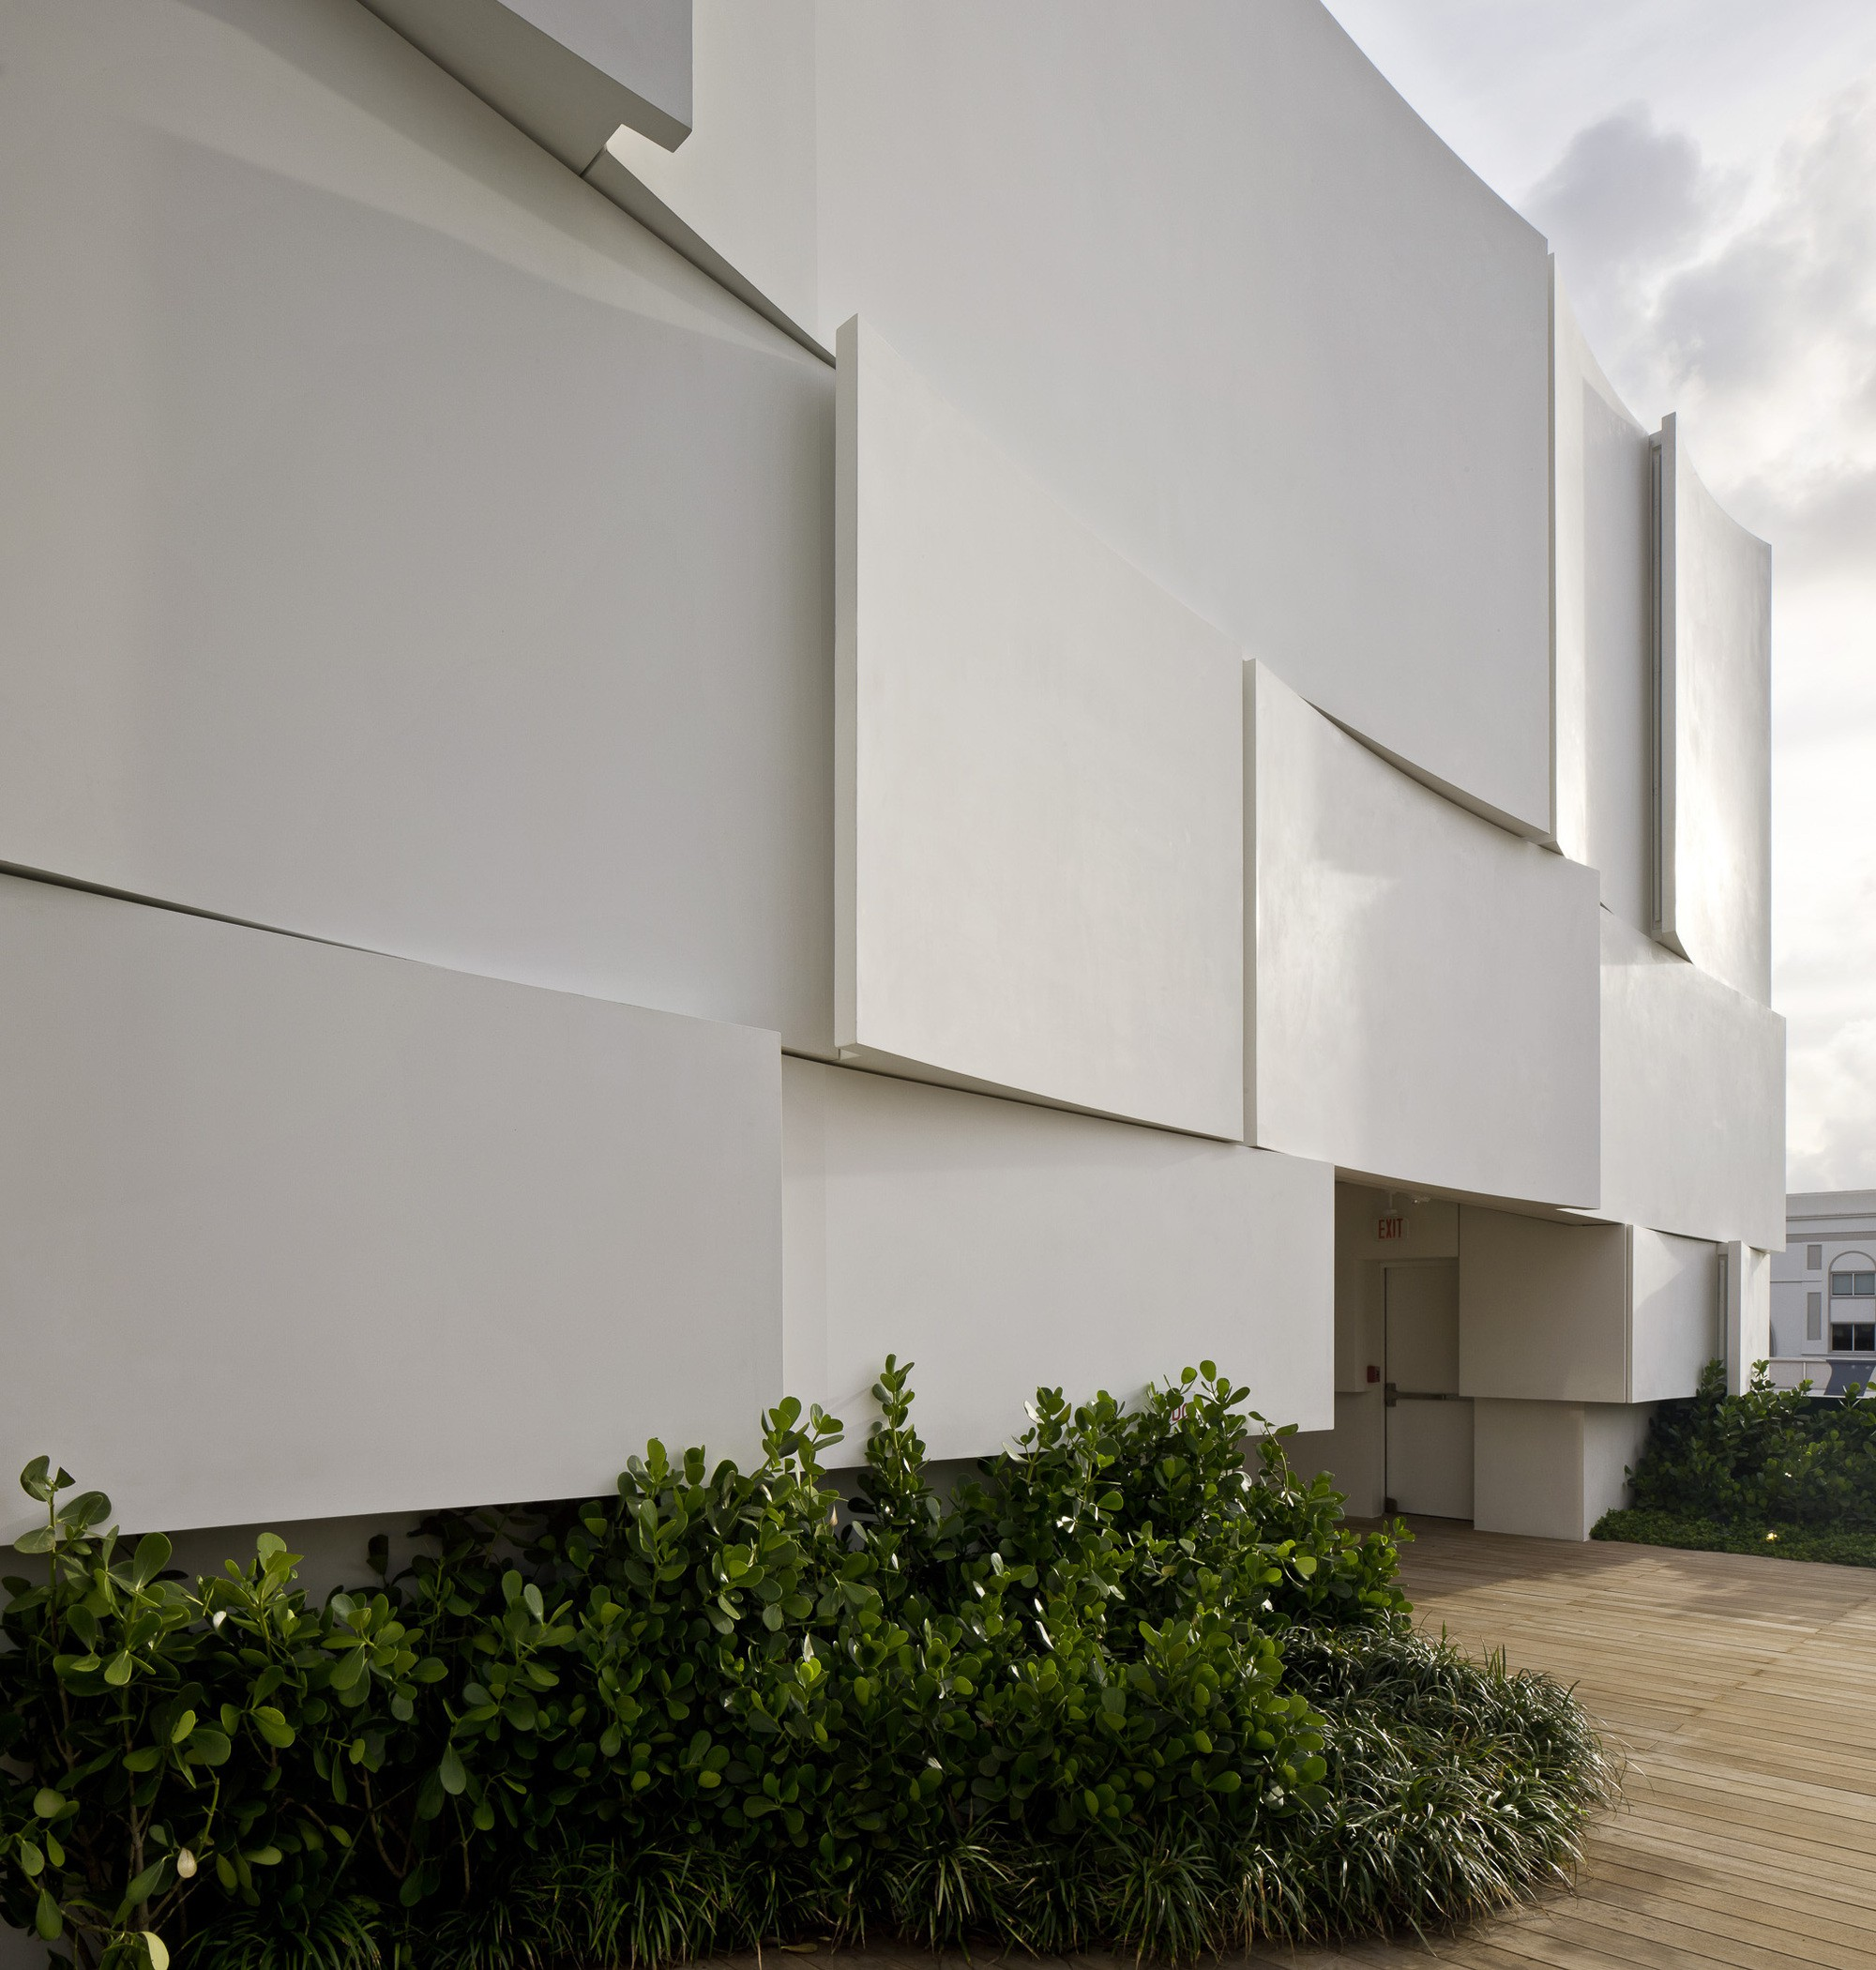 Dior Miami Facade-yesonfashion-com-11